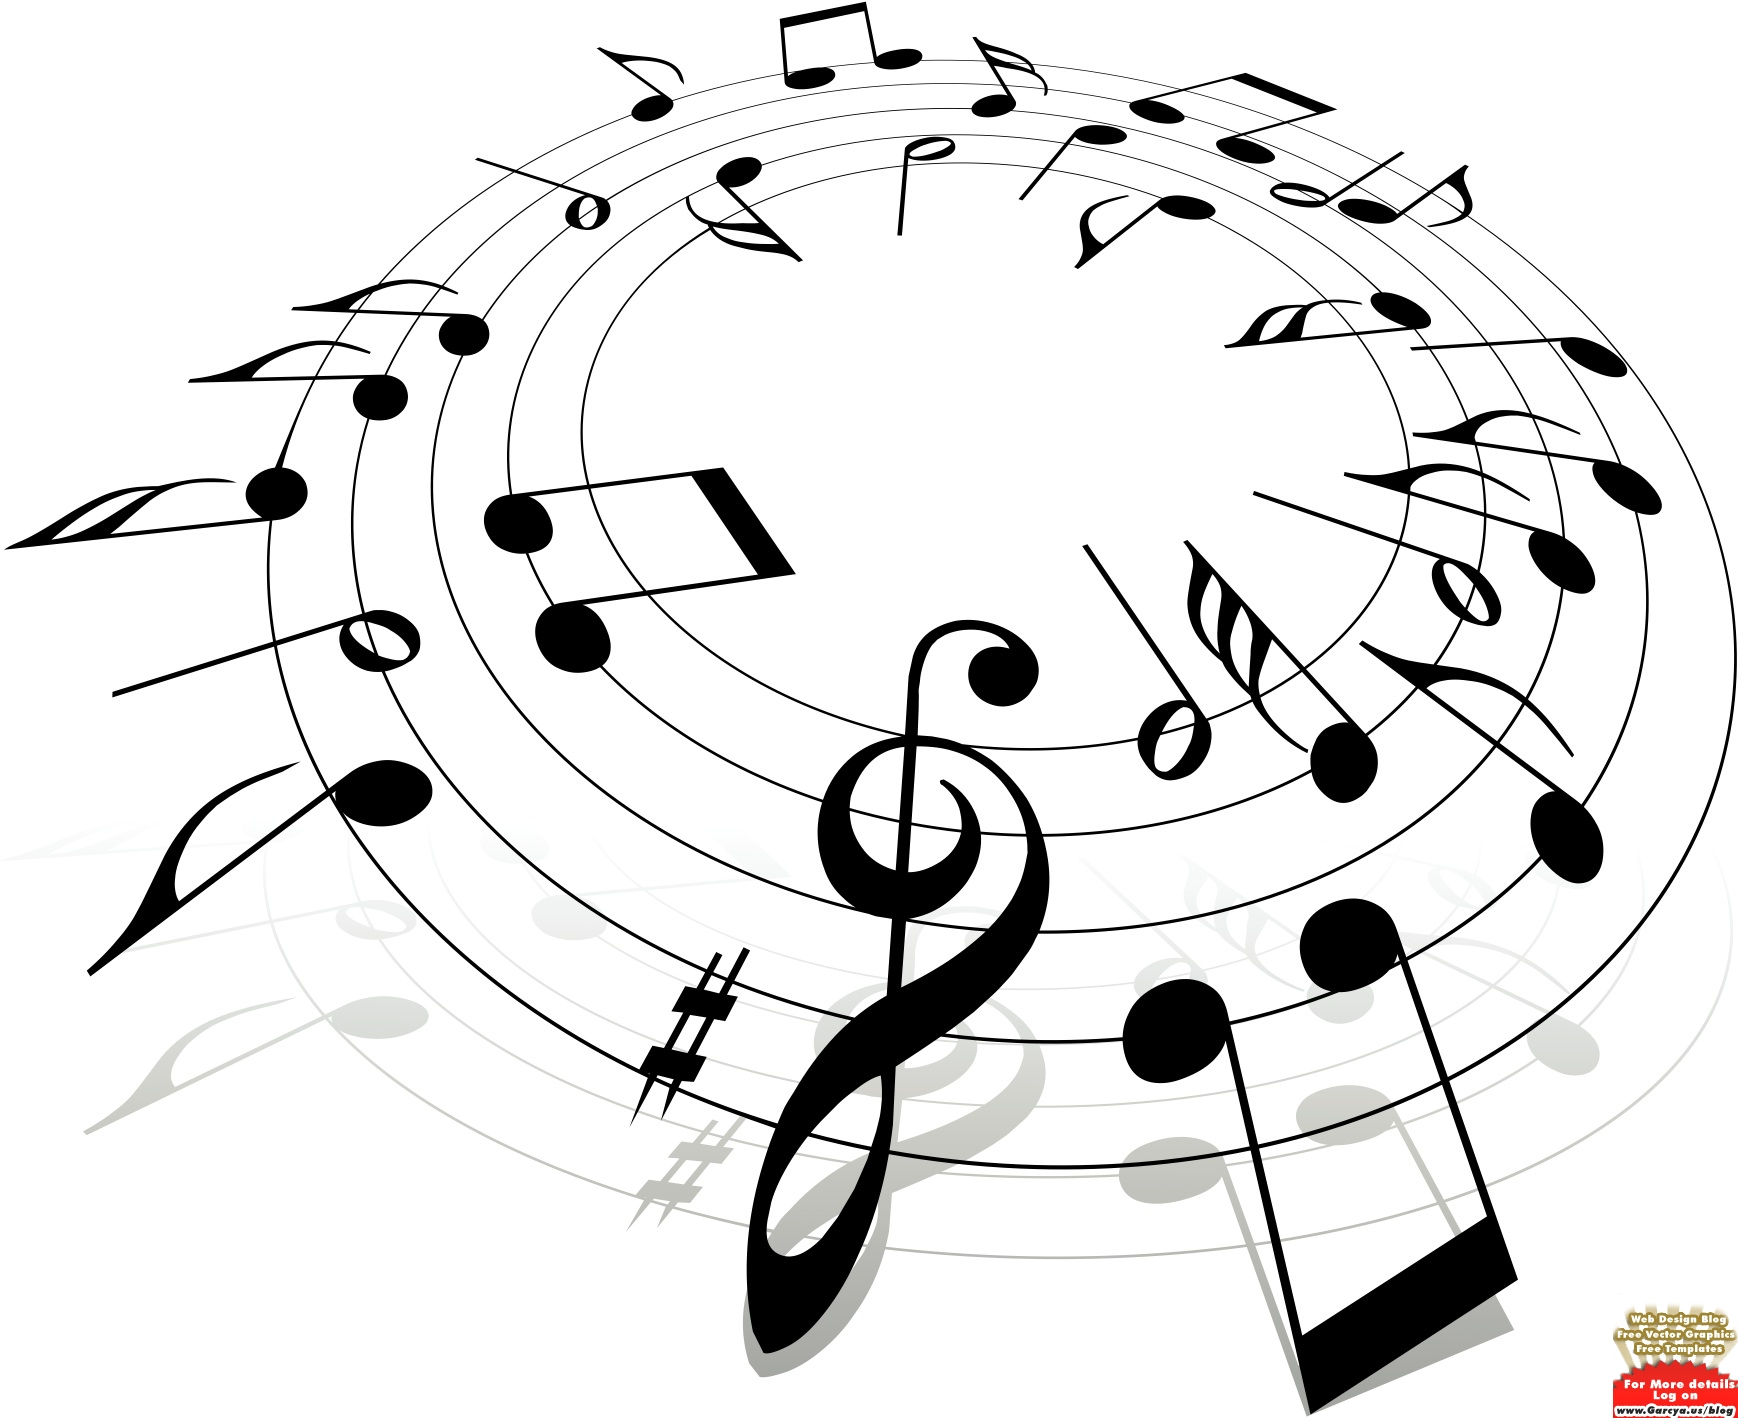 Christian Music for 30 Days - Music Notes